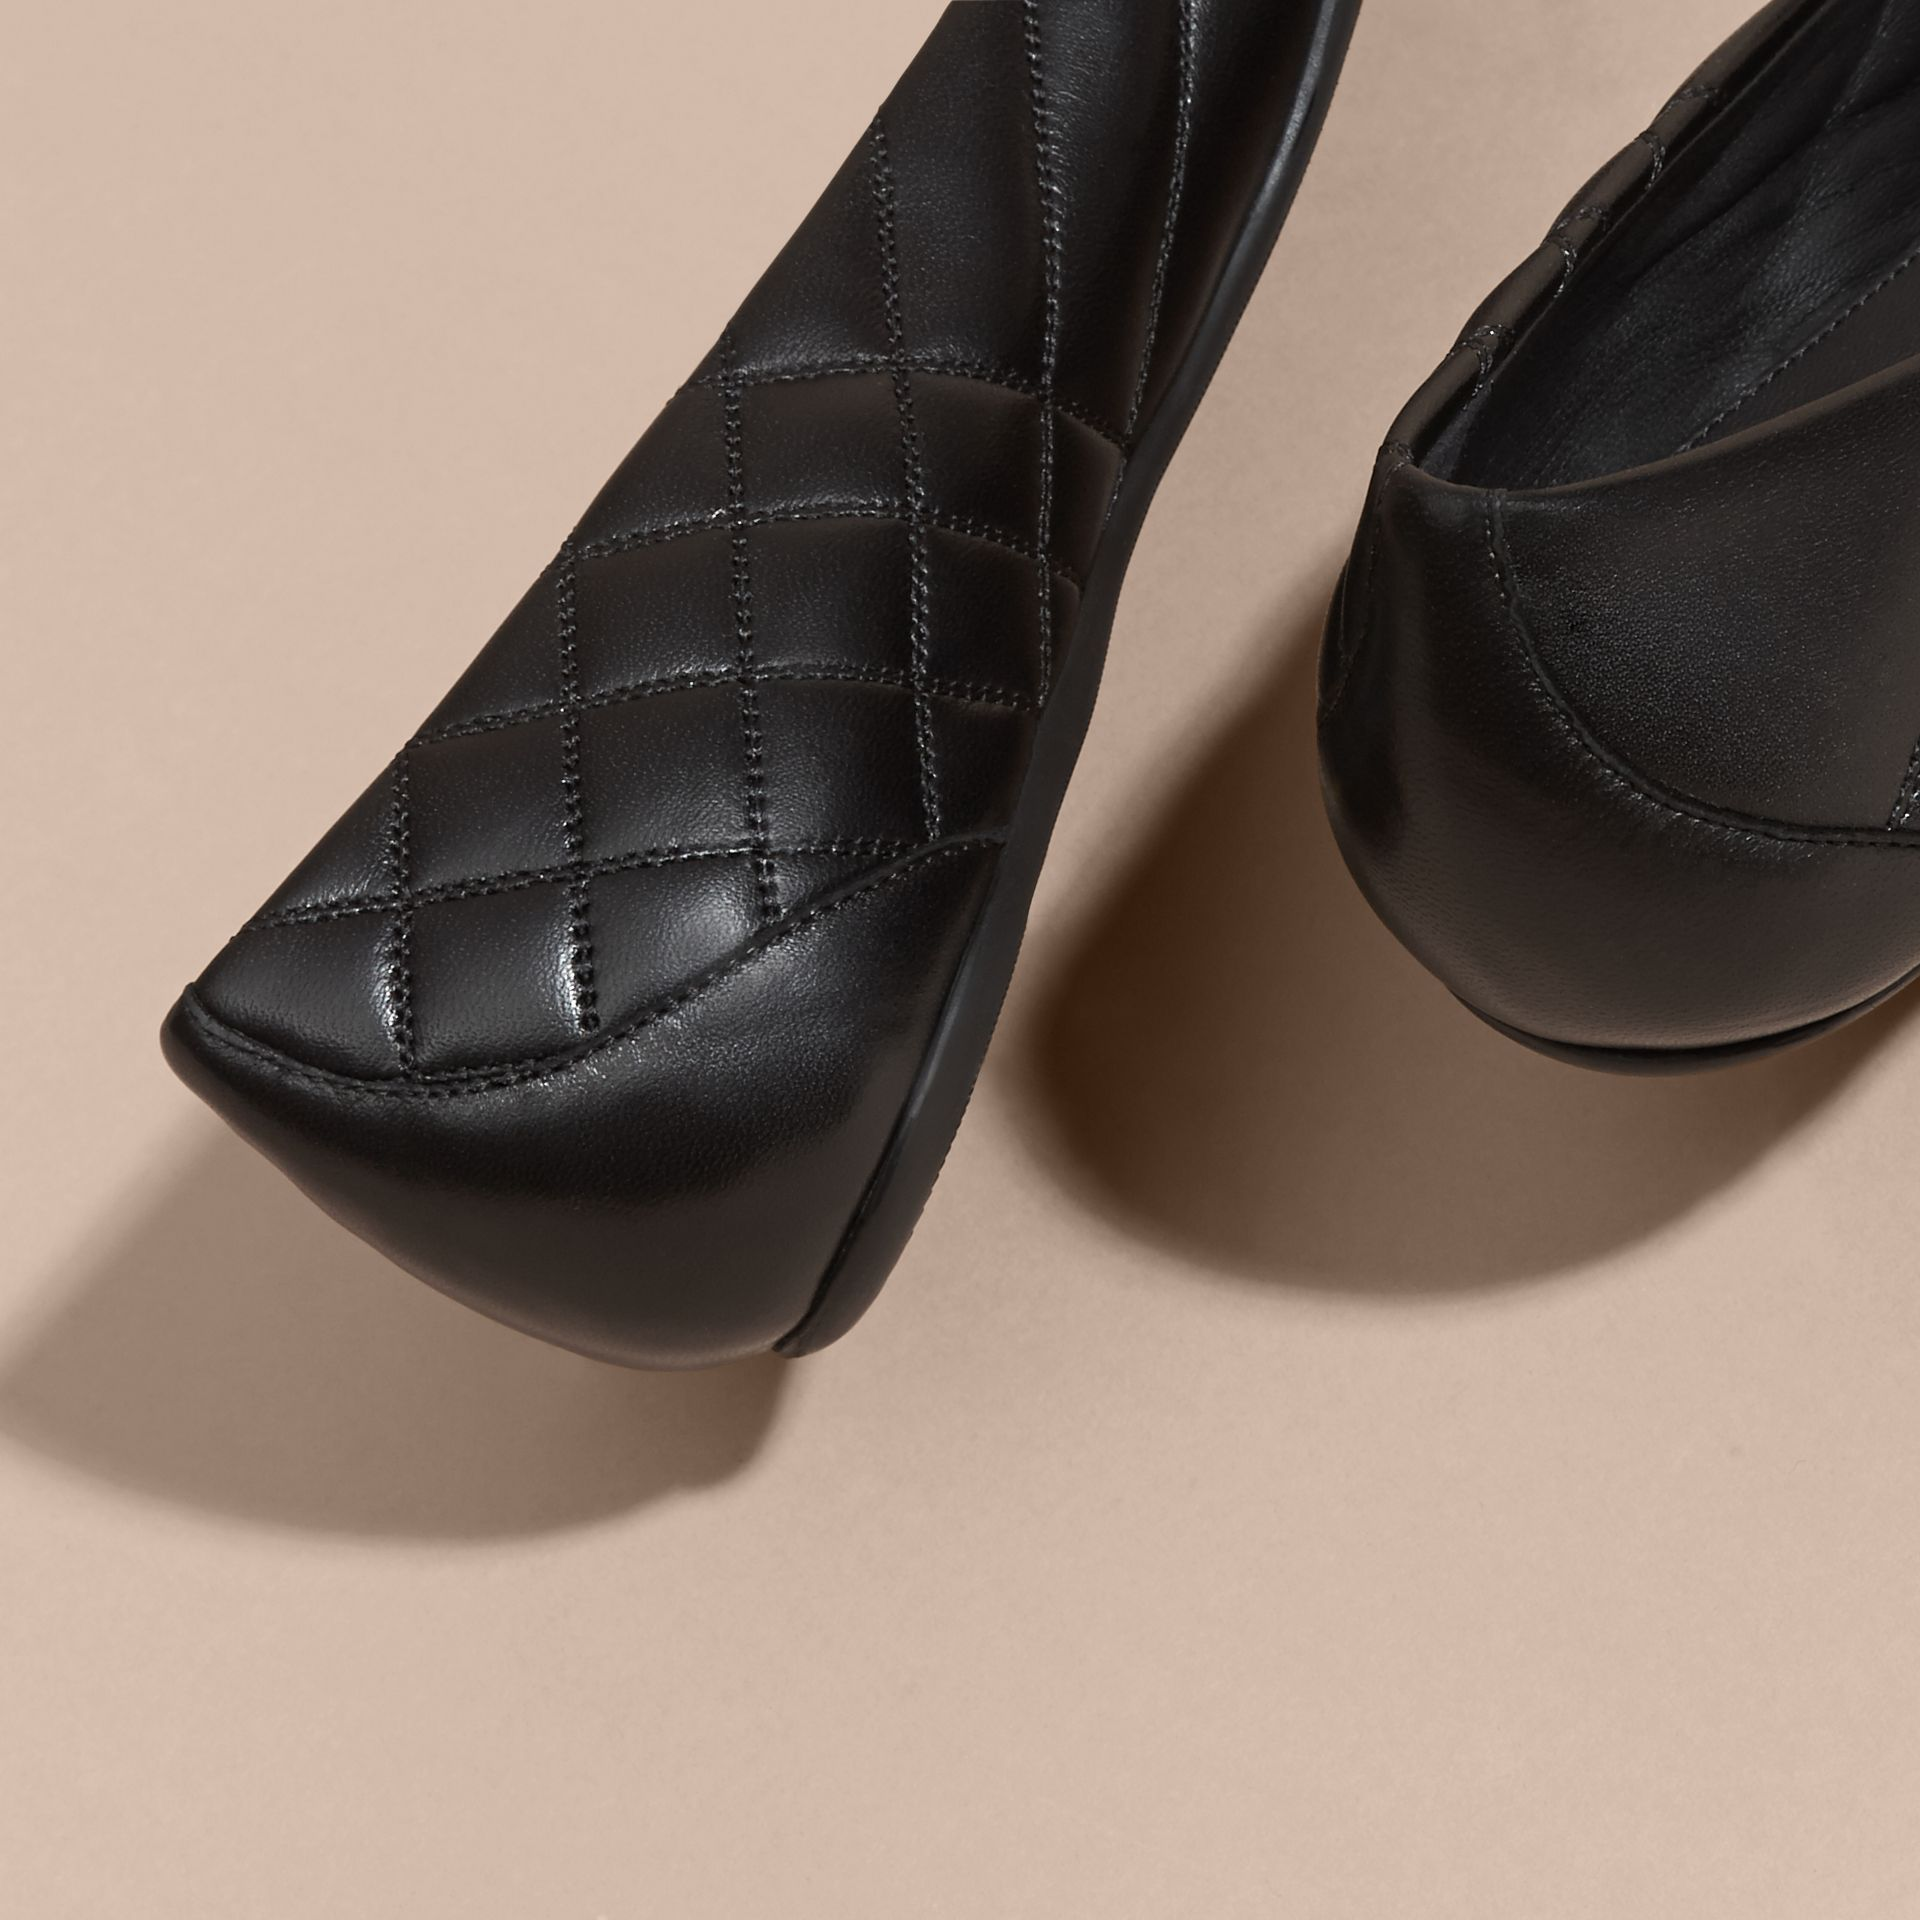 Buckle Detail Quilted Lambskin Ballerinas - Women | Burberry - gallery image 4